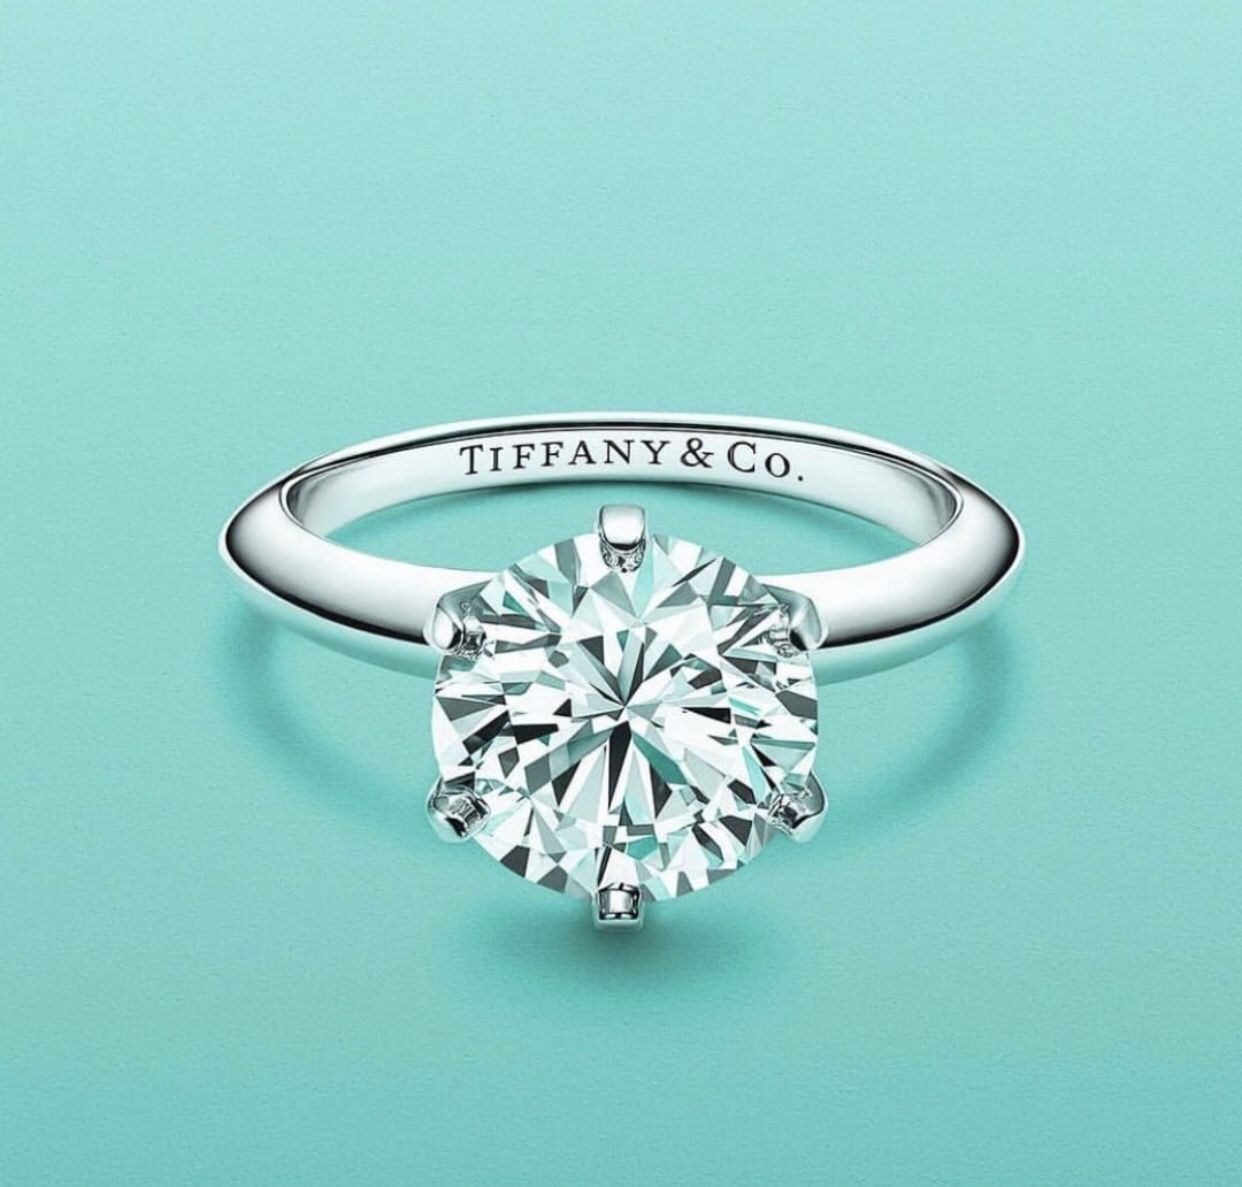 Tiffany Ring🔥 Save if you love this shape